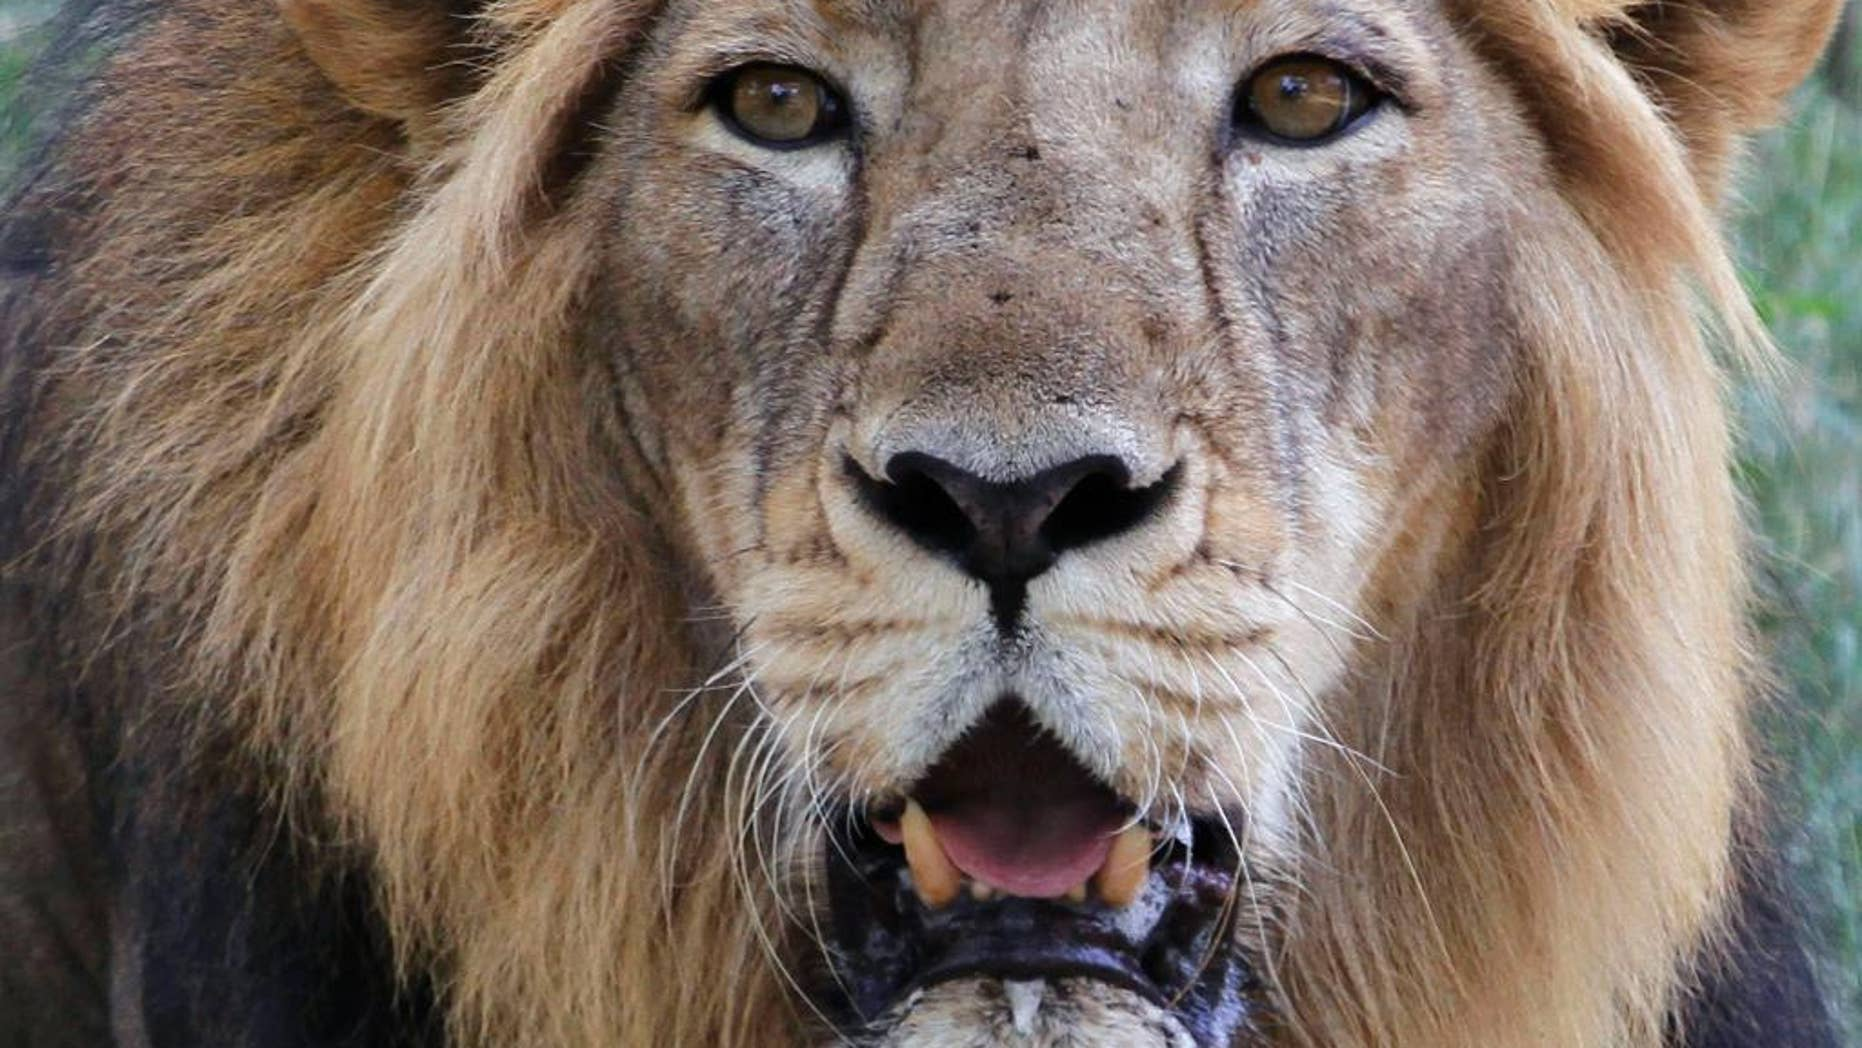 FILE - In this May 10, 2015 file photo, an Asiatic lion rests at its enclosure at the Kamala Nehru Zoological Garden in Ahmadabad, India. Gujarat forest officials say in a report that the rains killed at least 10 of the country's 523 lions, the last members of the subspecies left anywhere in the wild. (AP Photo/Ajit Solanki)